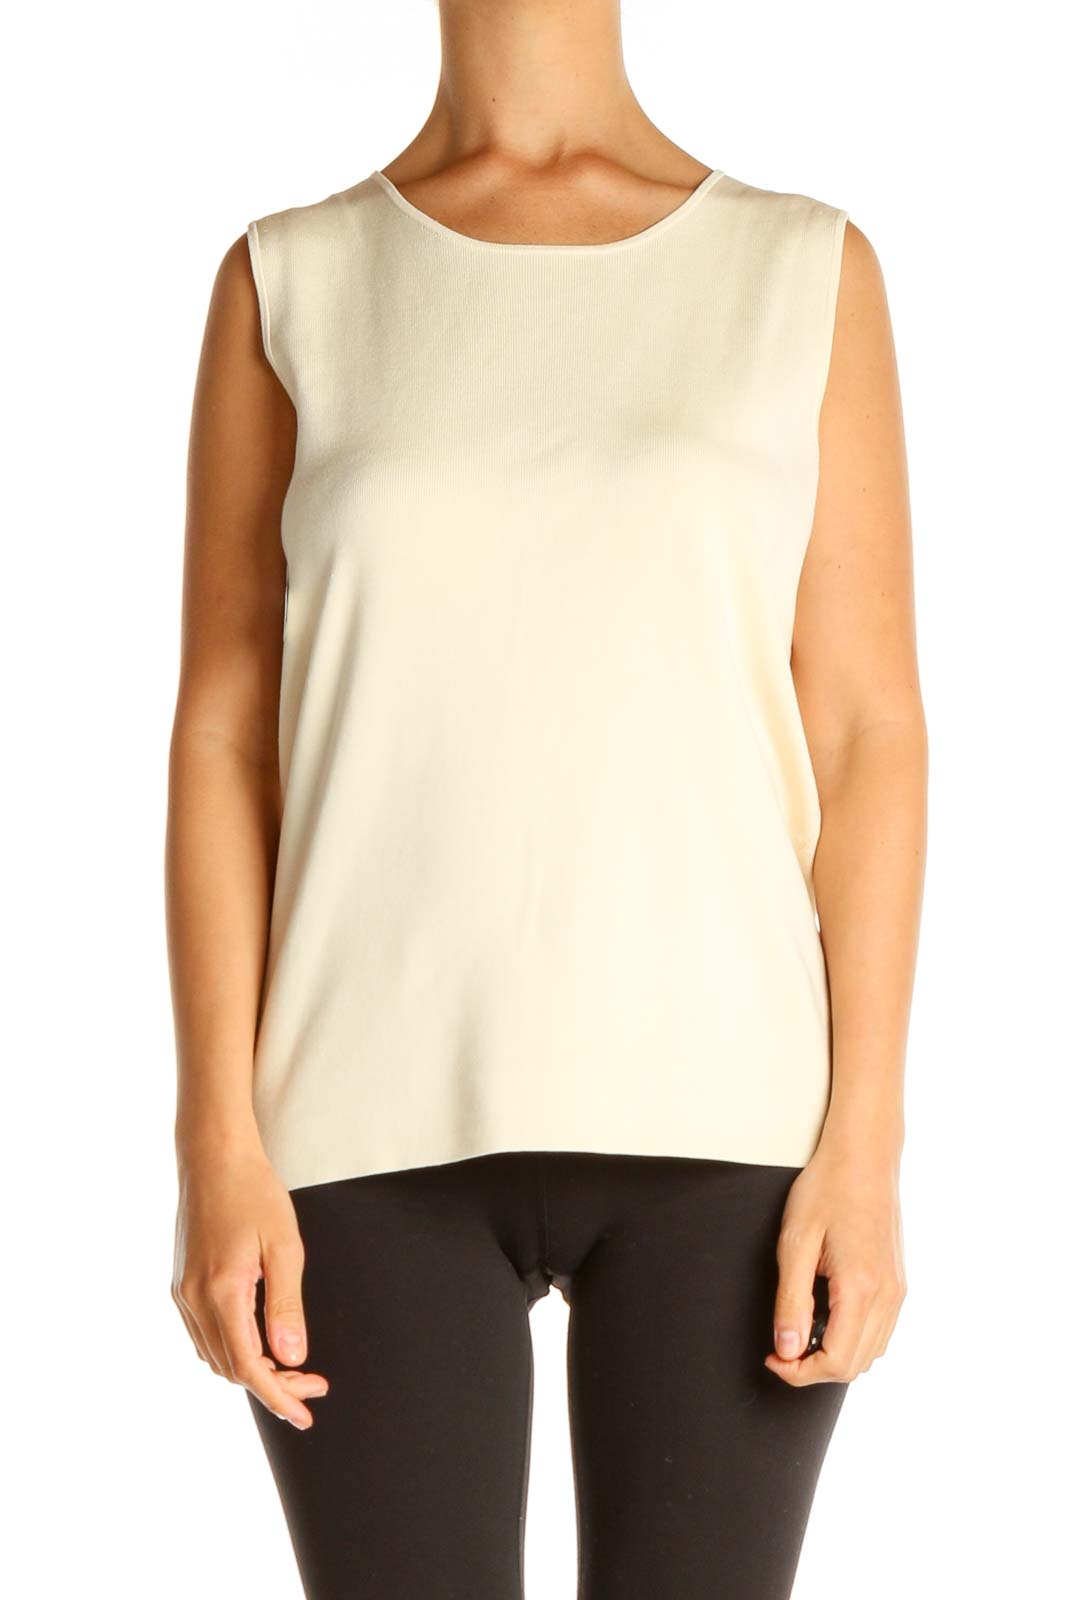 Beige Solid All Day Wear Tank Top Front